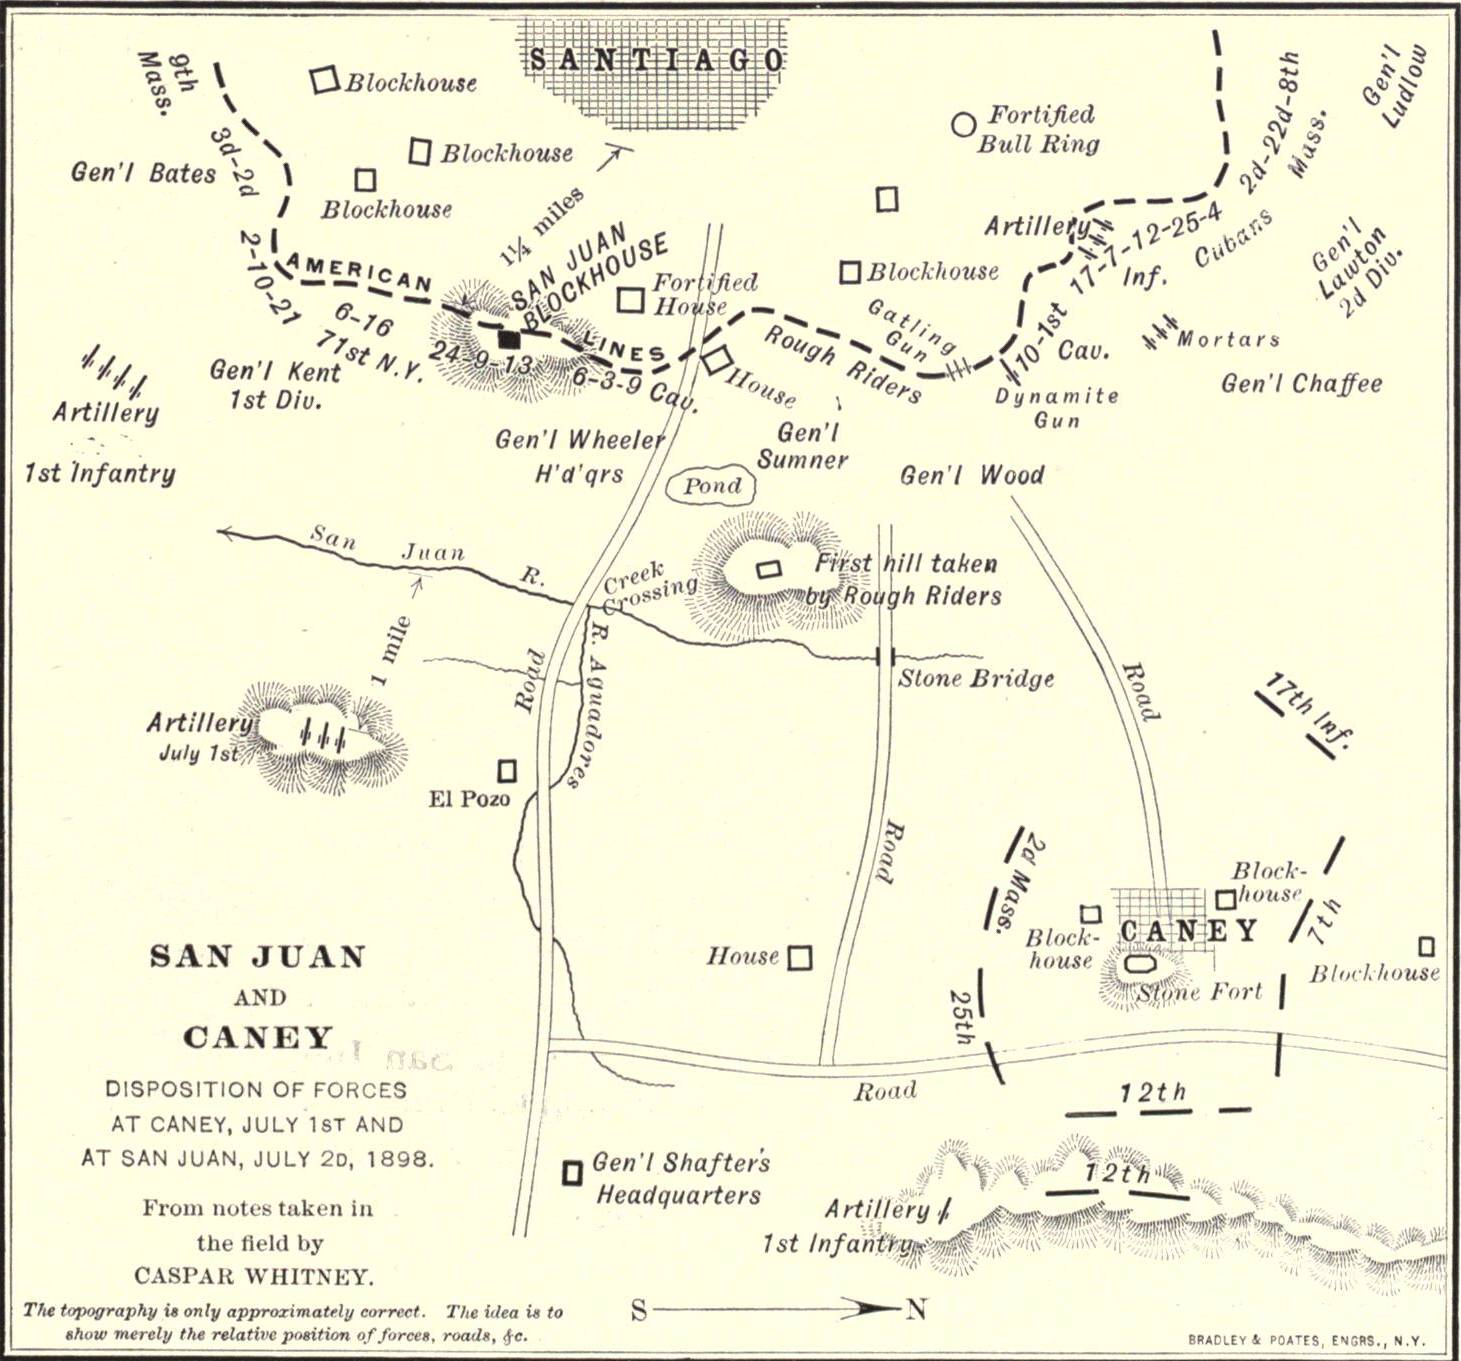 Description Disposition of forces at San Juan and El Caney, July 1898 ...: http://commons.wikimedia.org/wiki/file:disposition_of_forces_at_san_juan_and_el_caney,_july_1898.jpg